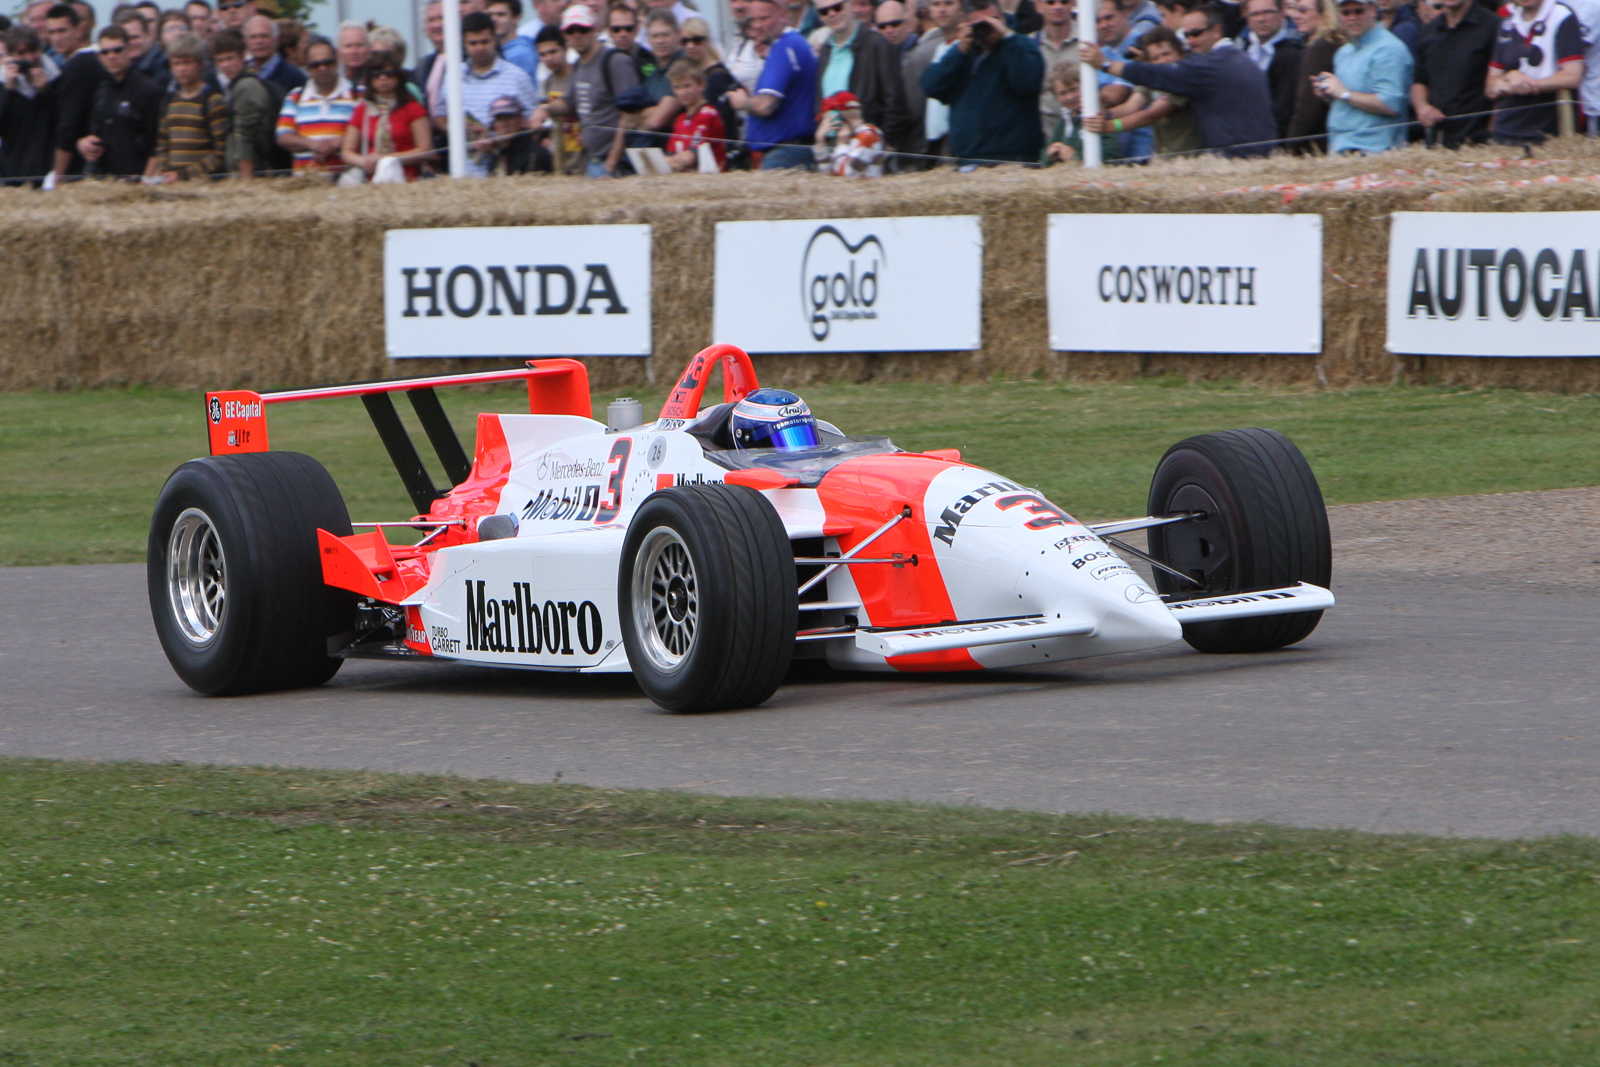 20080711 - Goodwood Festival of Speed -080711 -011